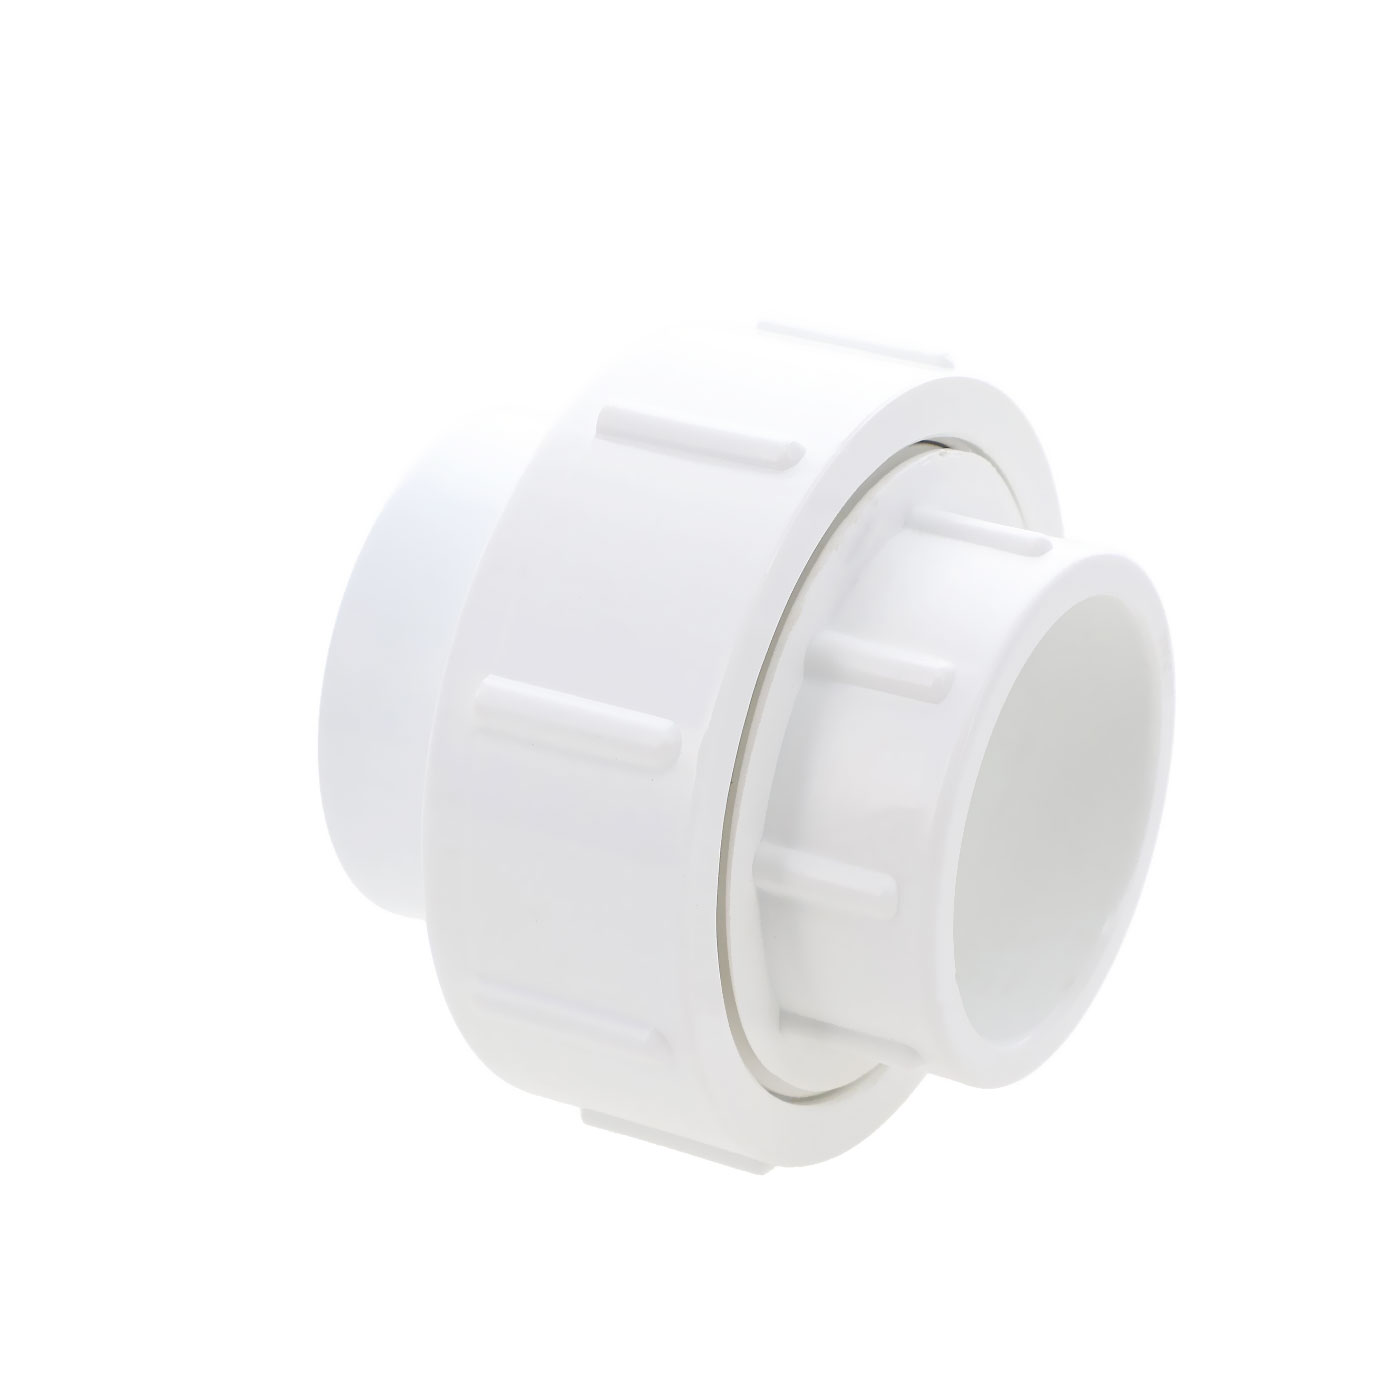 Spa Pipe 1.5'' PVC Connecting Sleeve to Screw